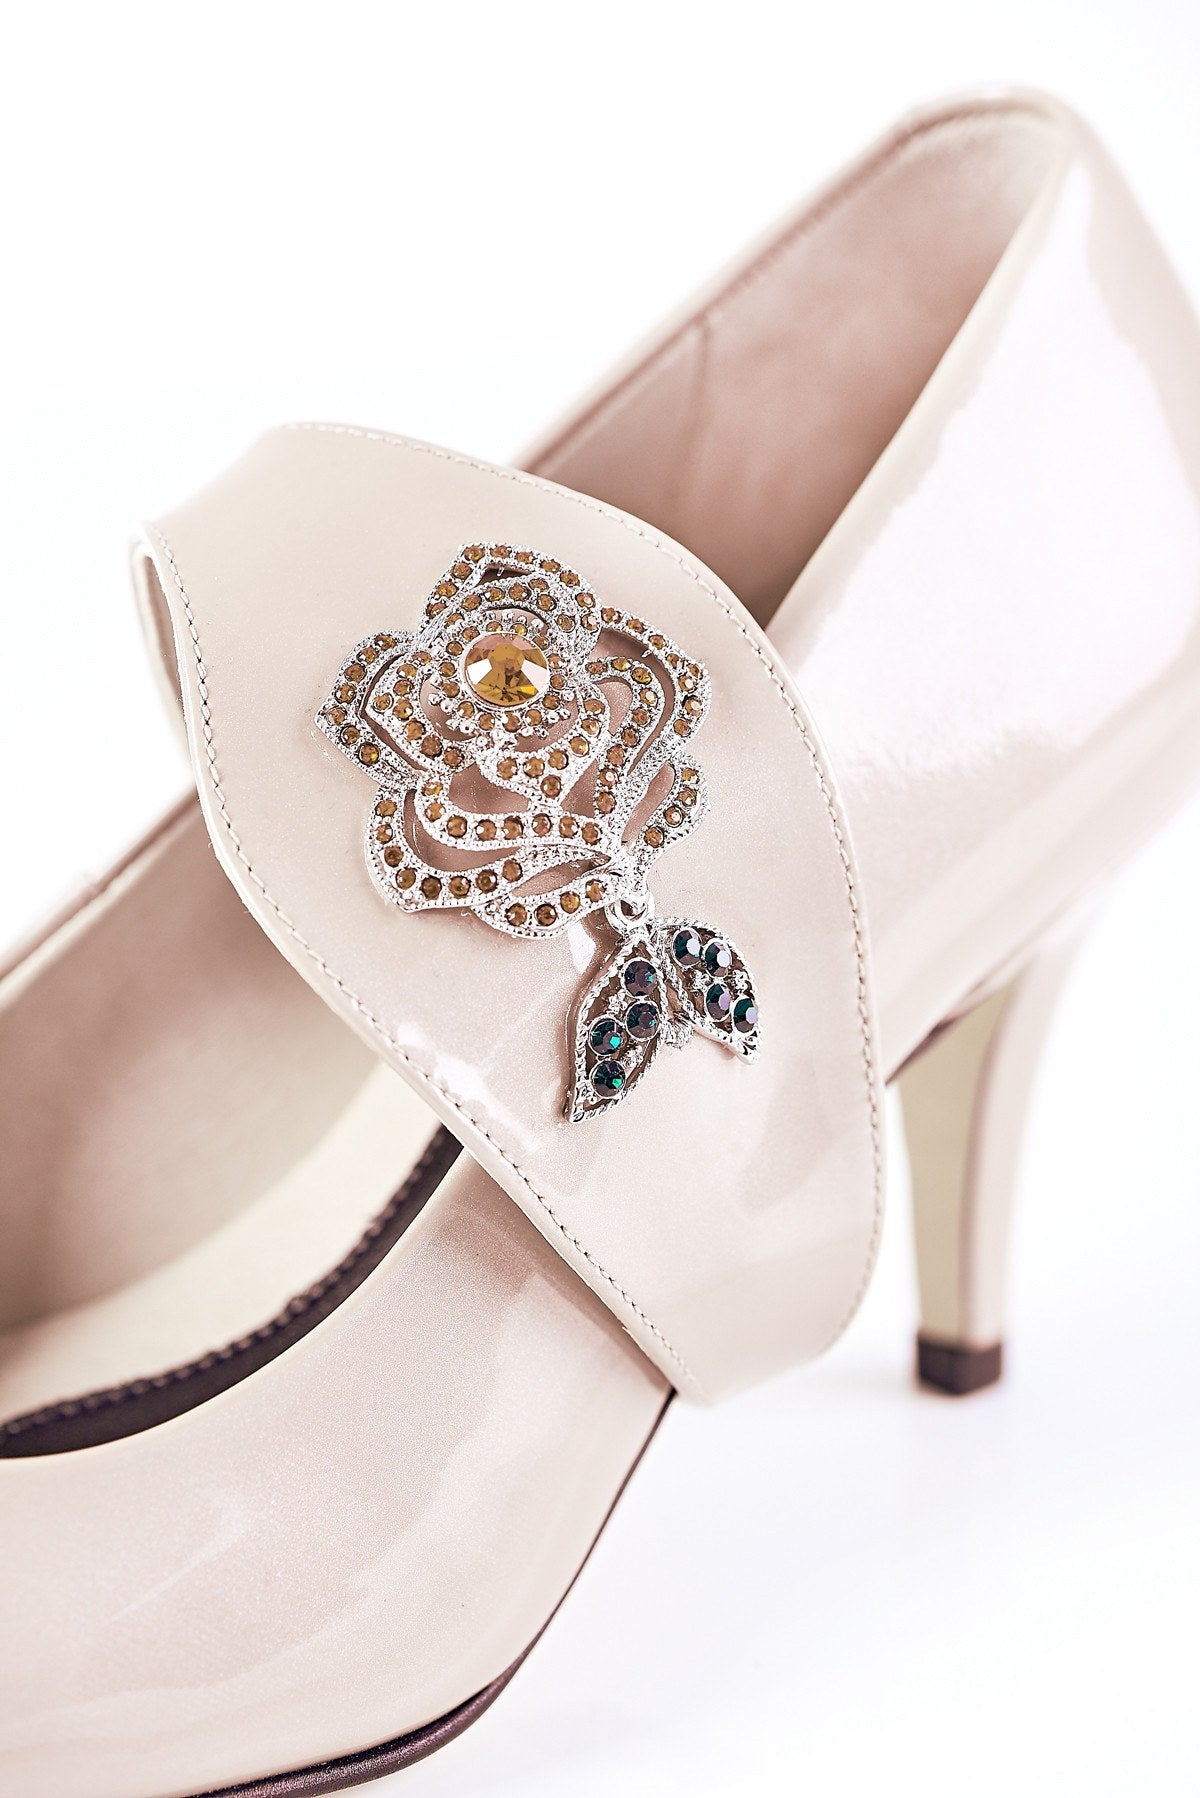 Time to Bloom - Shoellery - Shoes by Shaherazad